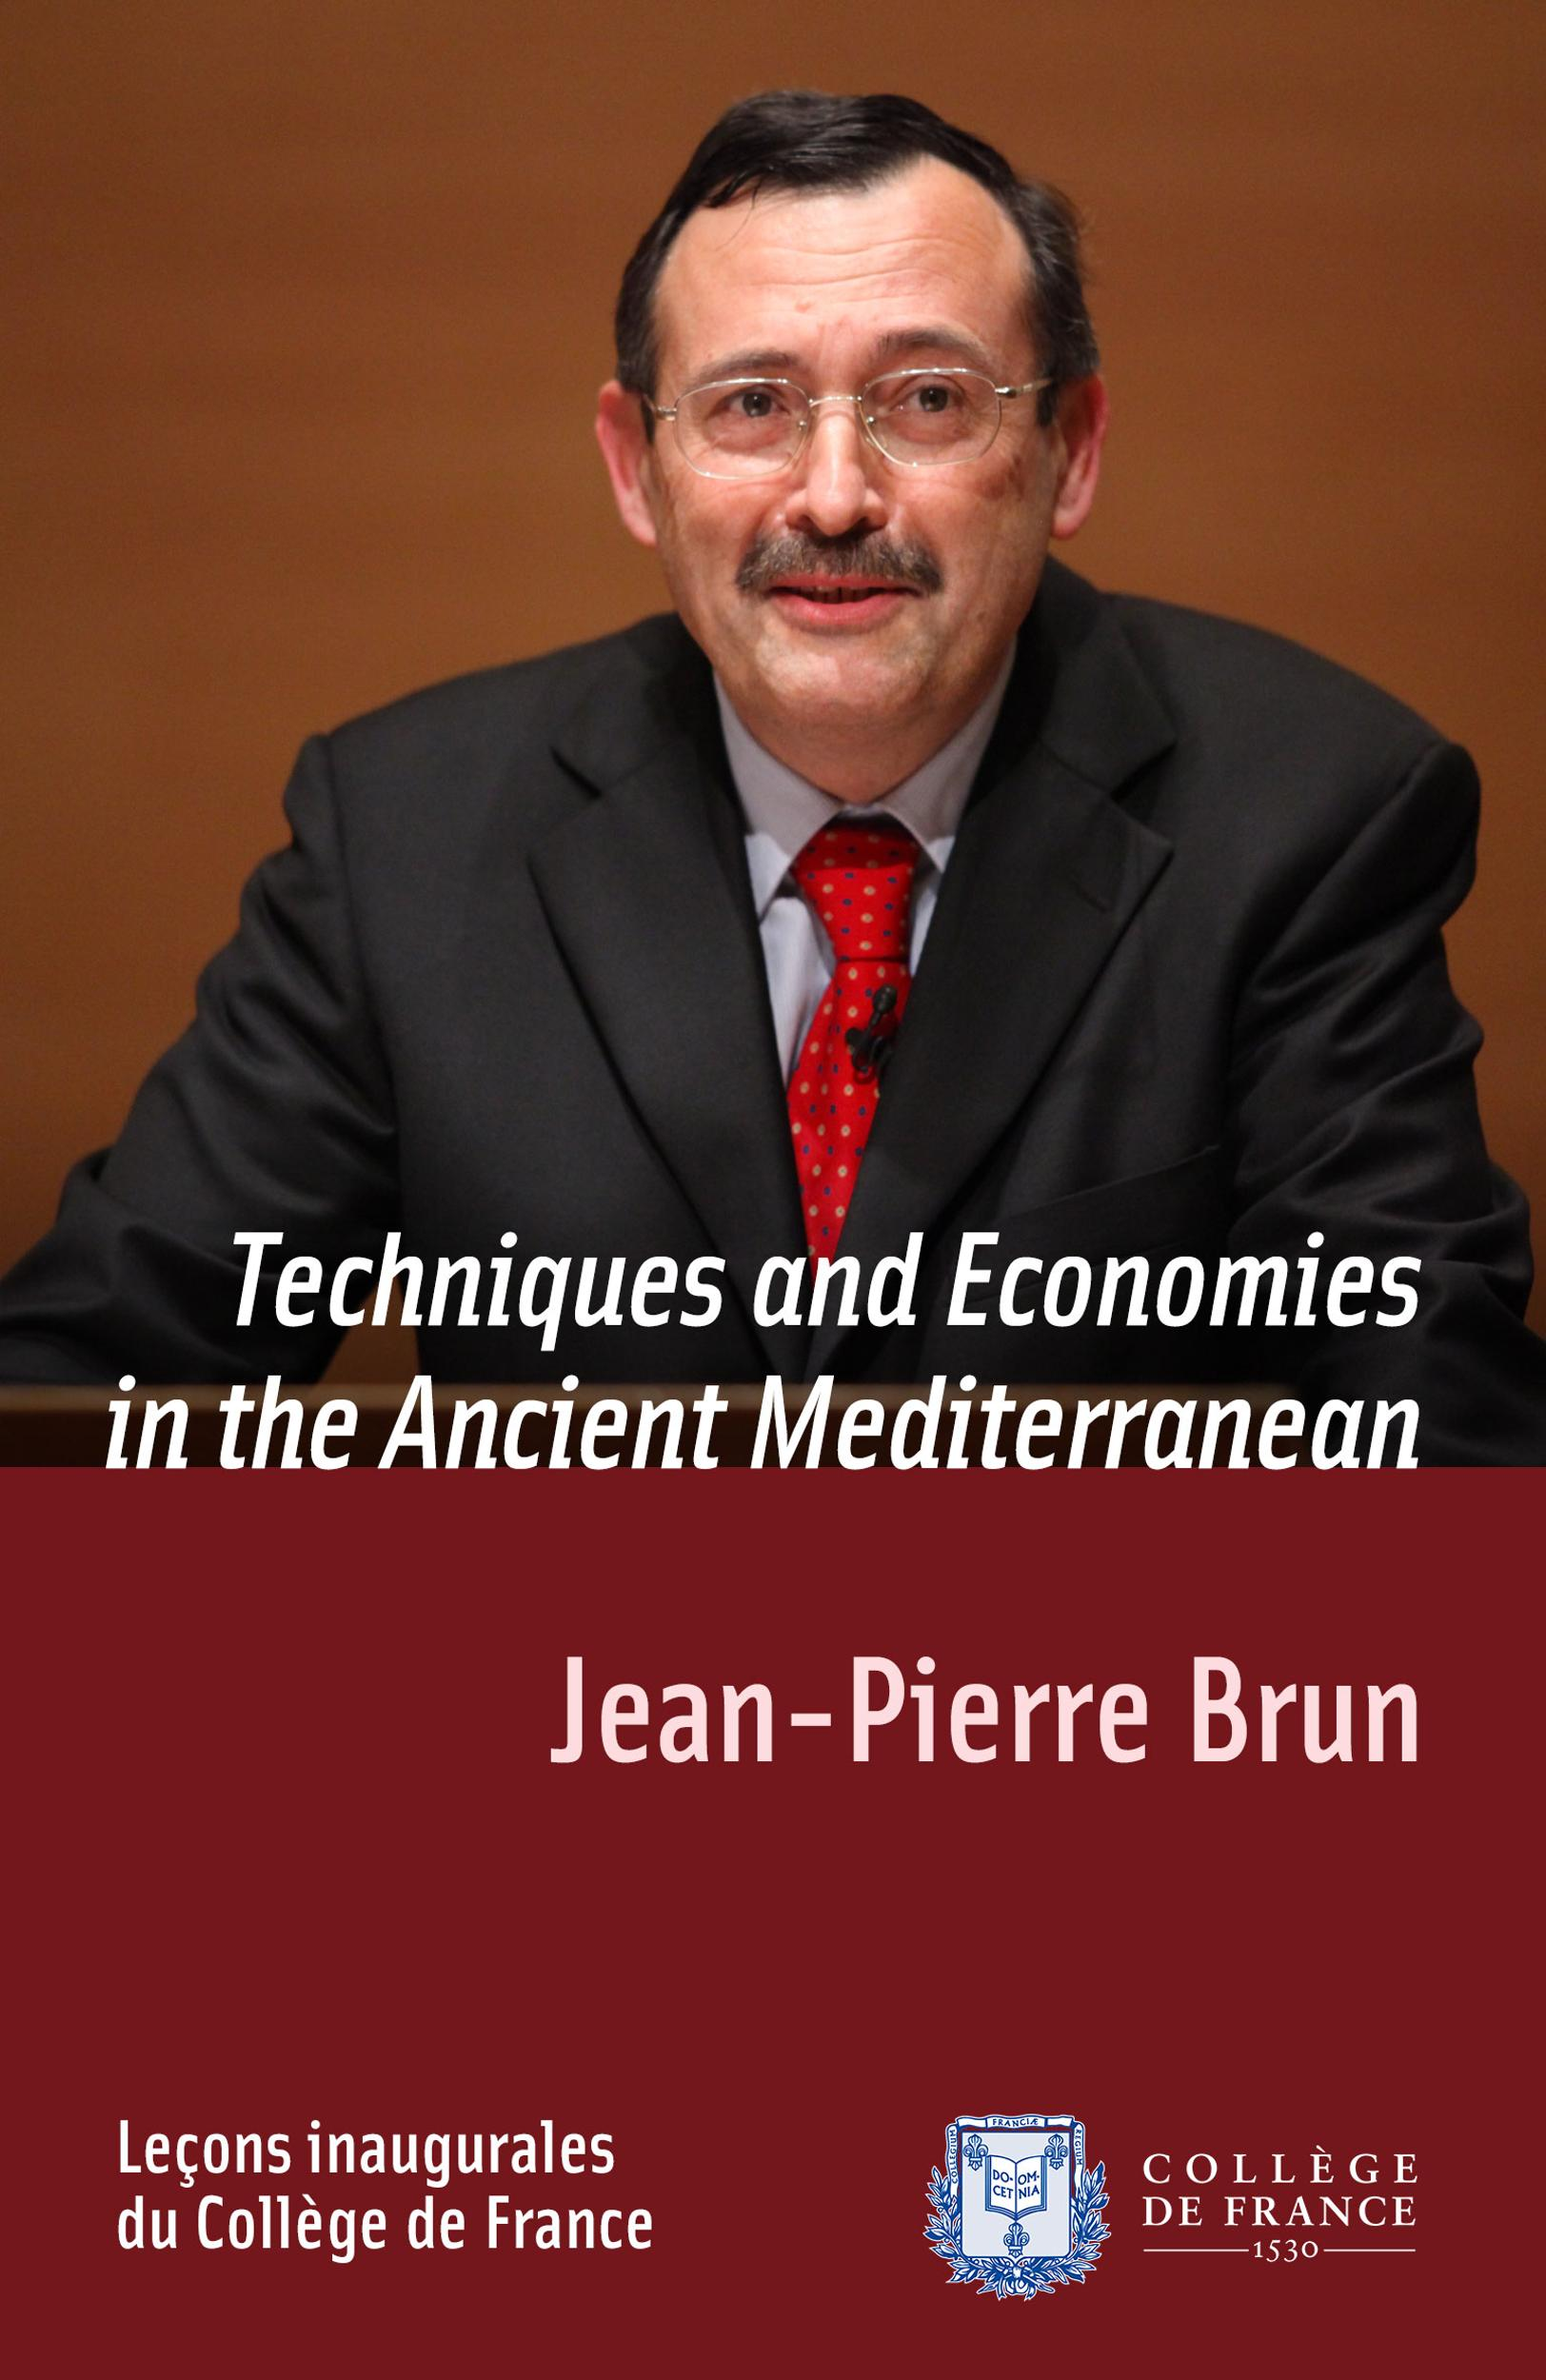 Techniques and Economies in the Ancient Mediterranean, INAUGURAL LECTURE DELIVERED ON THURSDAY 5 APRIL 2012